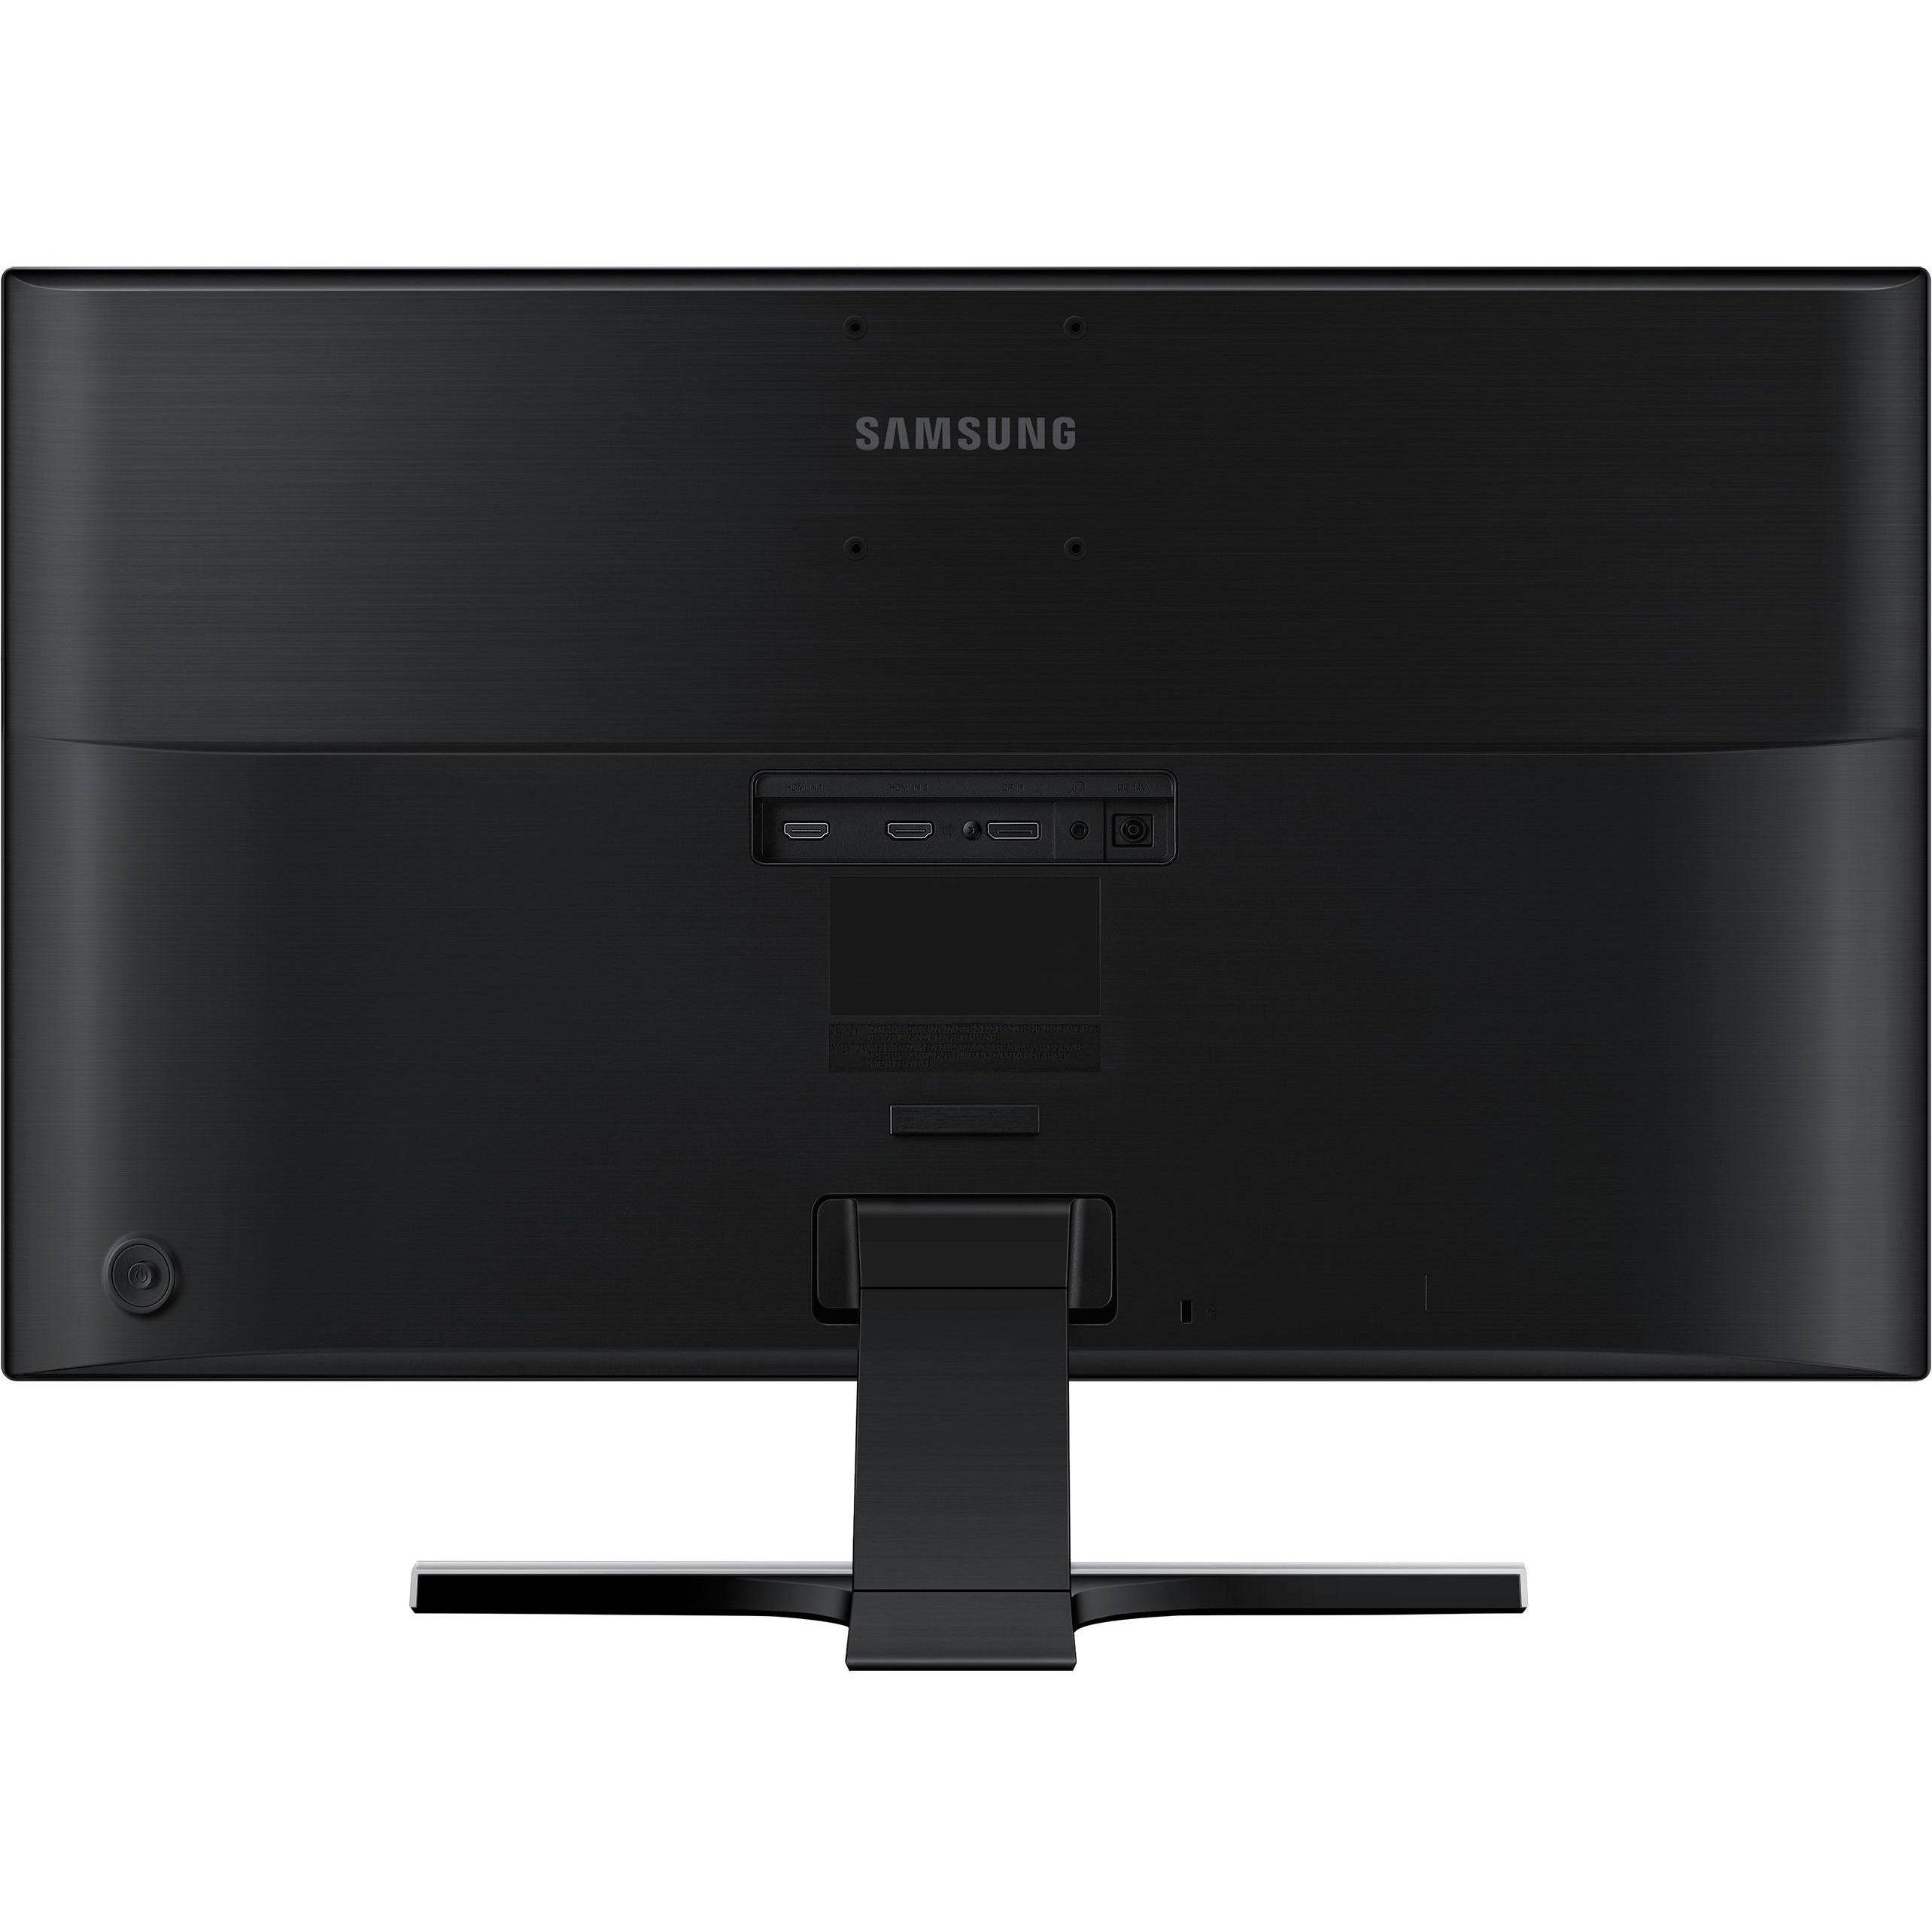 samsung u28e590d 28inch uhd 4k led gaming monitor novatech. Black Bedroom Furniture Sets. Home Design Ideas